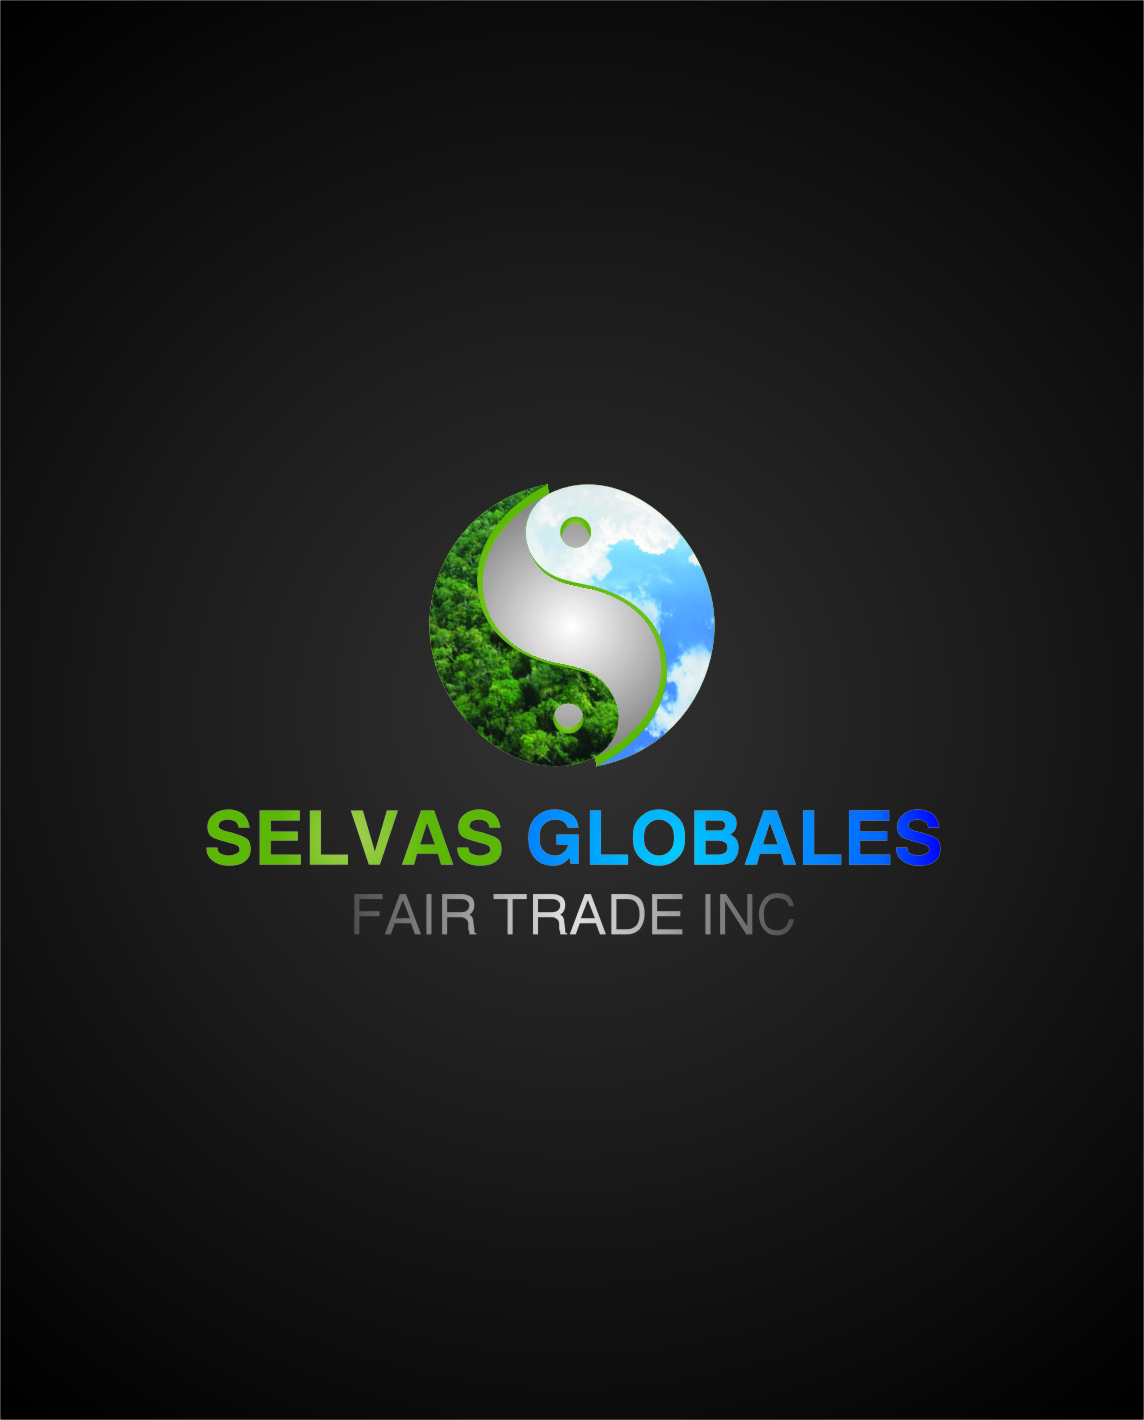 Logo Design by RasYa Muhammad Athaya - Entry No. 142 in the Logo Design Contest Captivating Logo Design for Selvas Globales Fair Trade Inc..